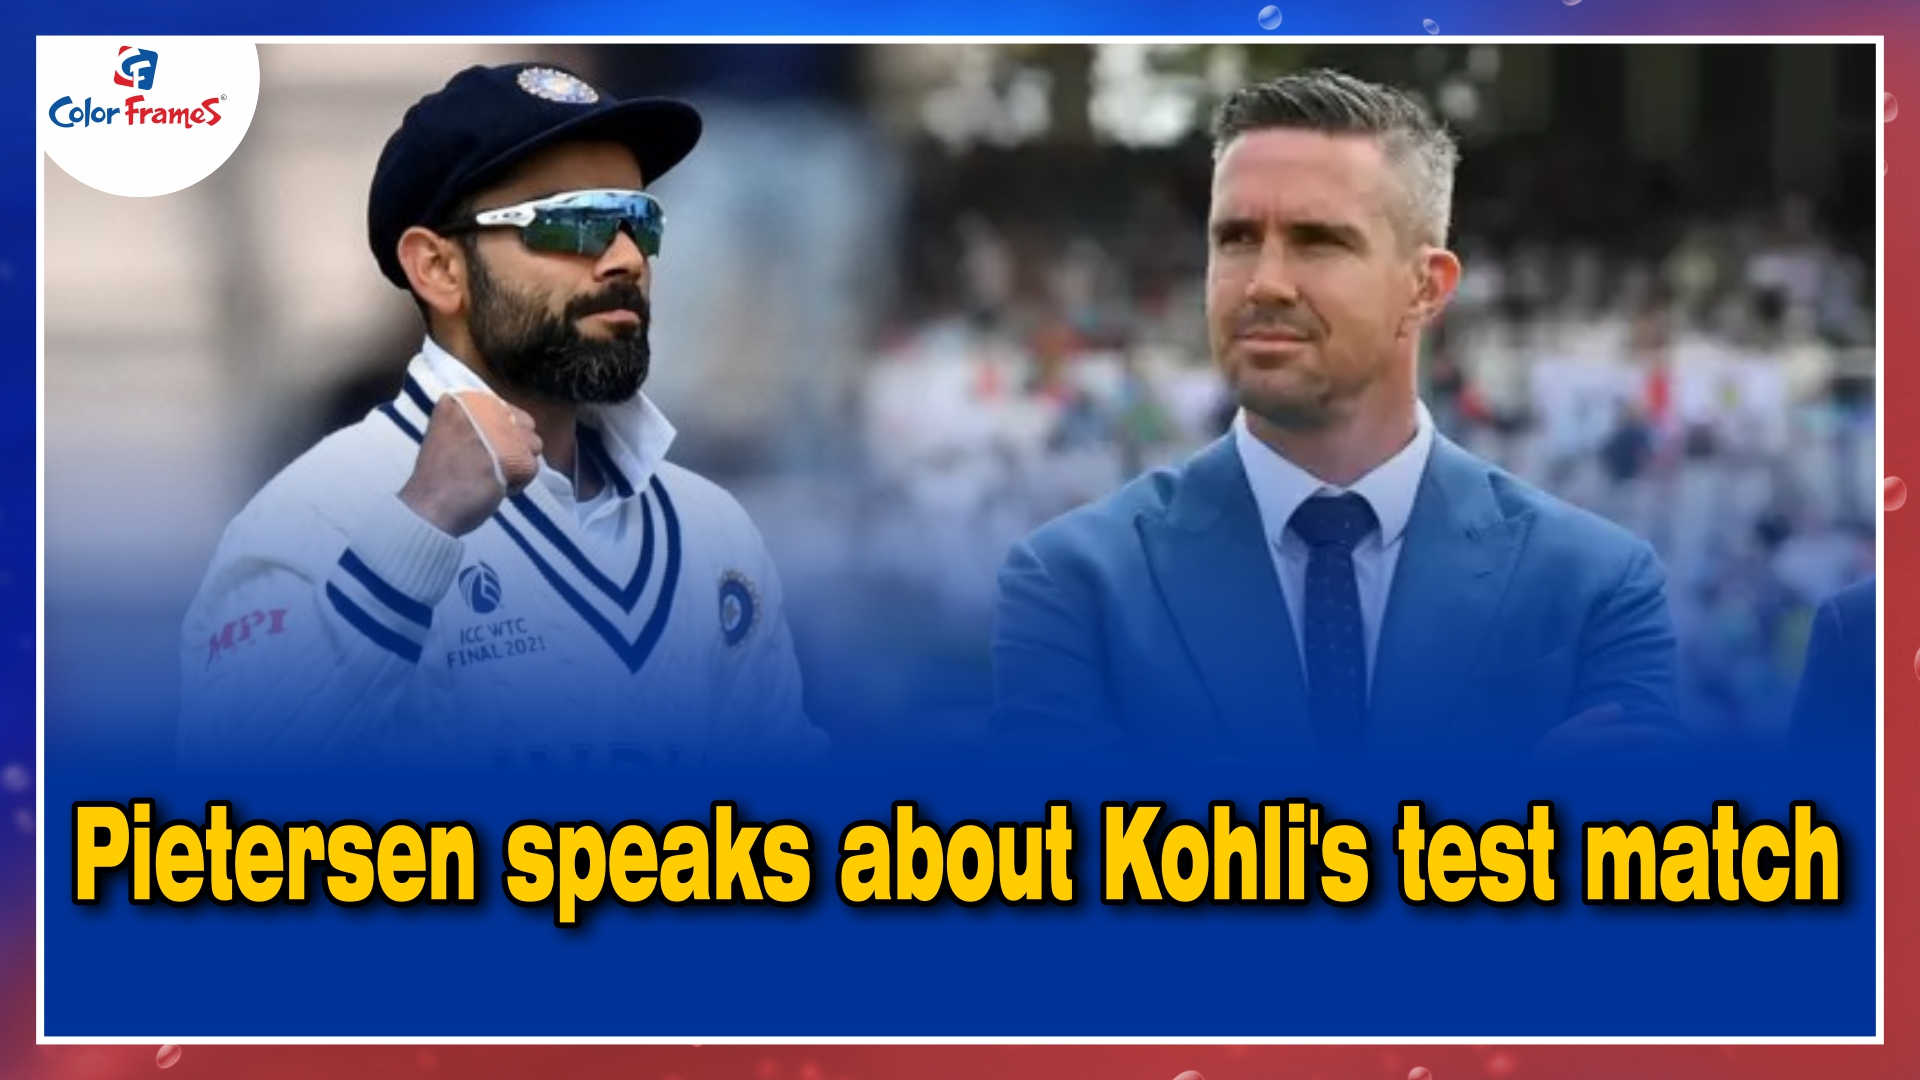 Virat Kohli's enthusiasm and intensity shows Test cricket means everything to him: Kevin Pietersen